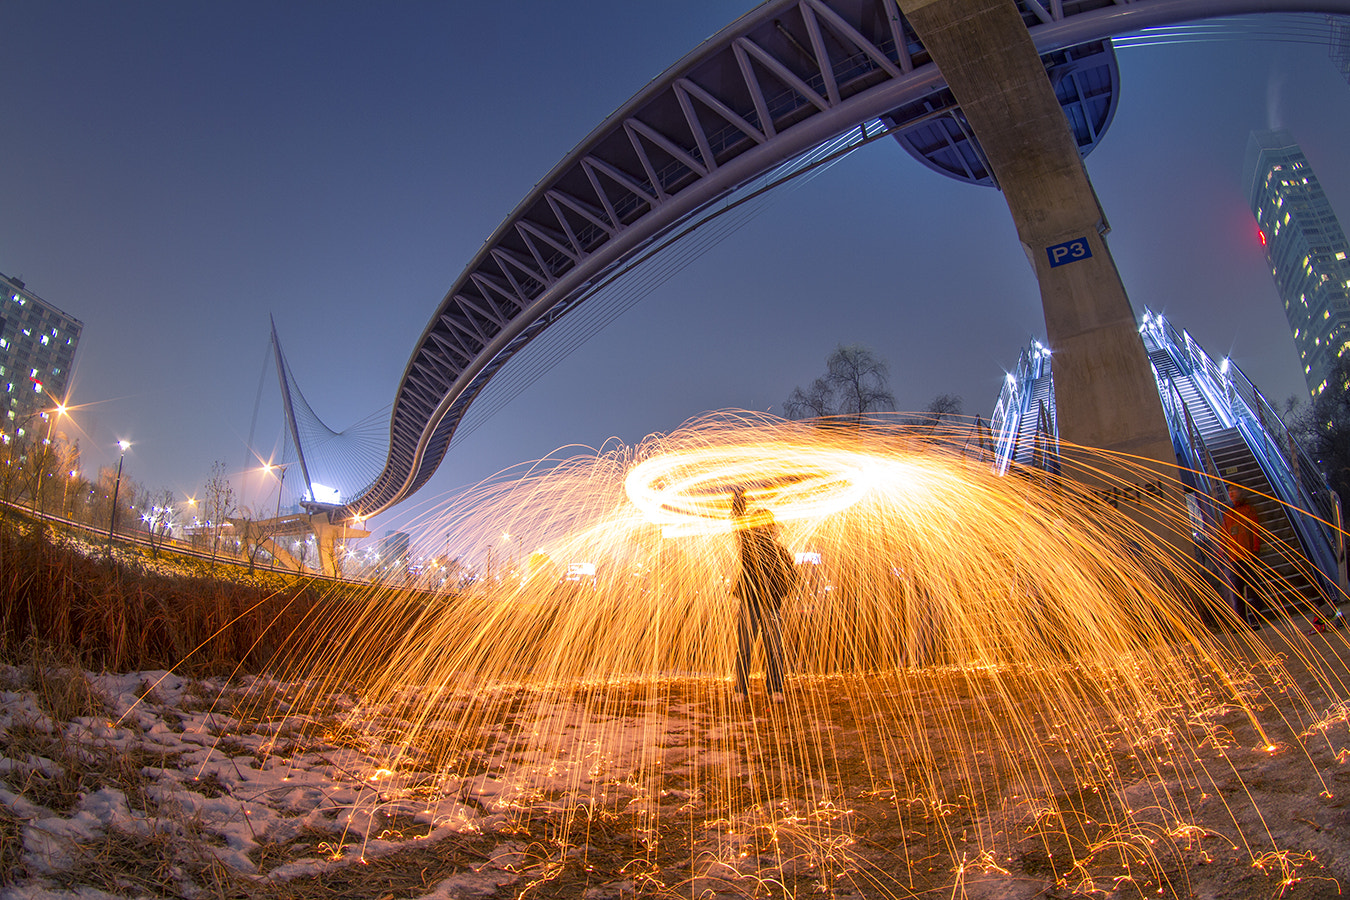 Photograph Spinning Flame by Gu Min Jeong on 500px